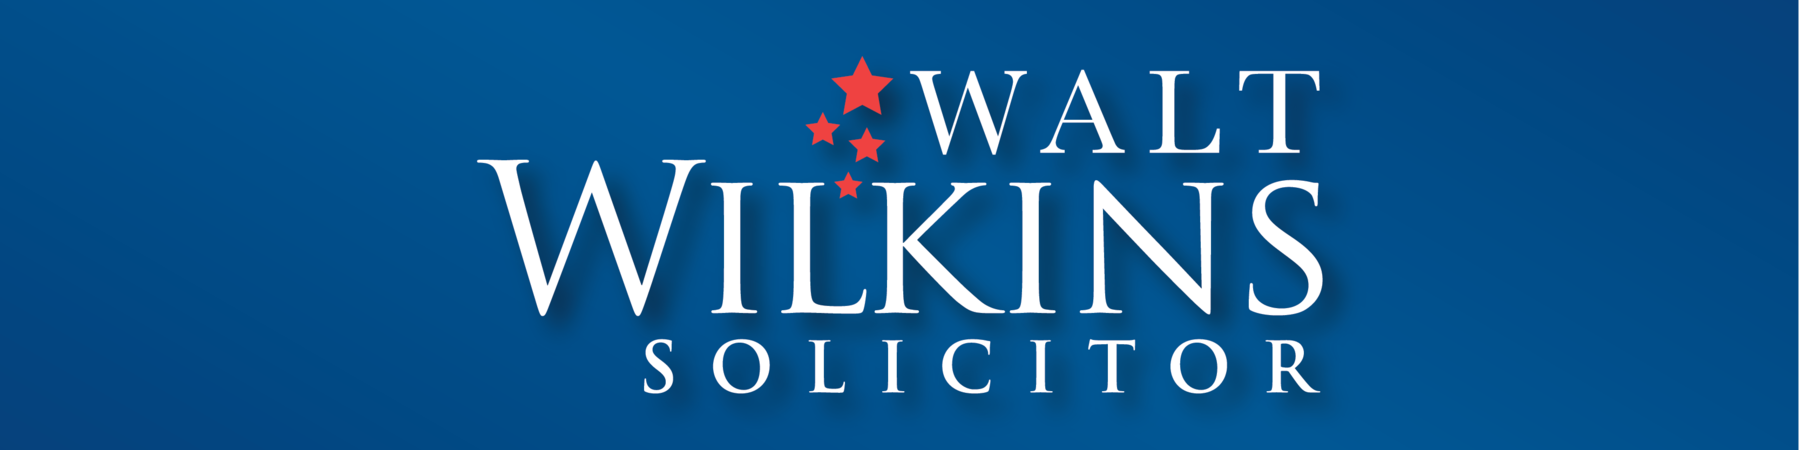 Wilkins for Solicitor: 2018 General Election